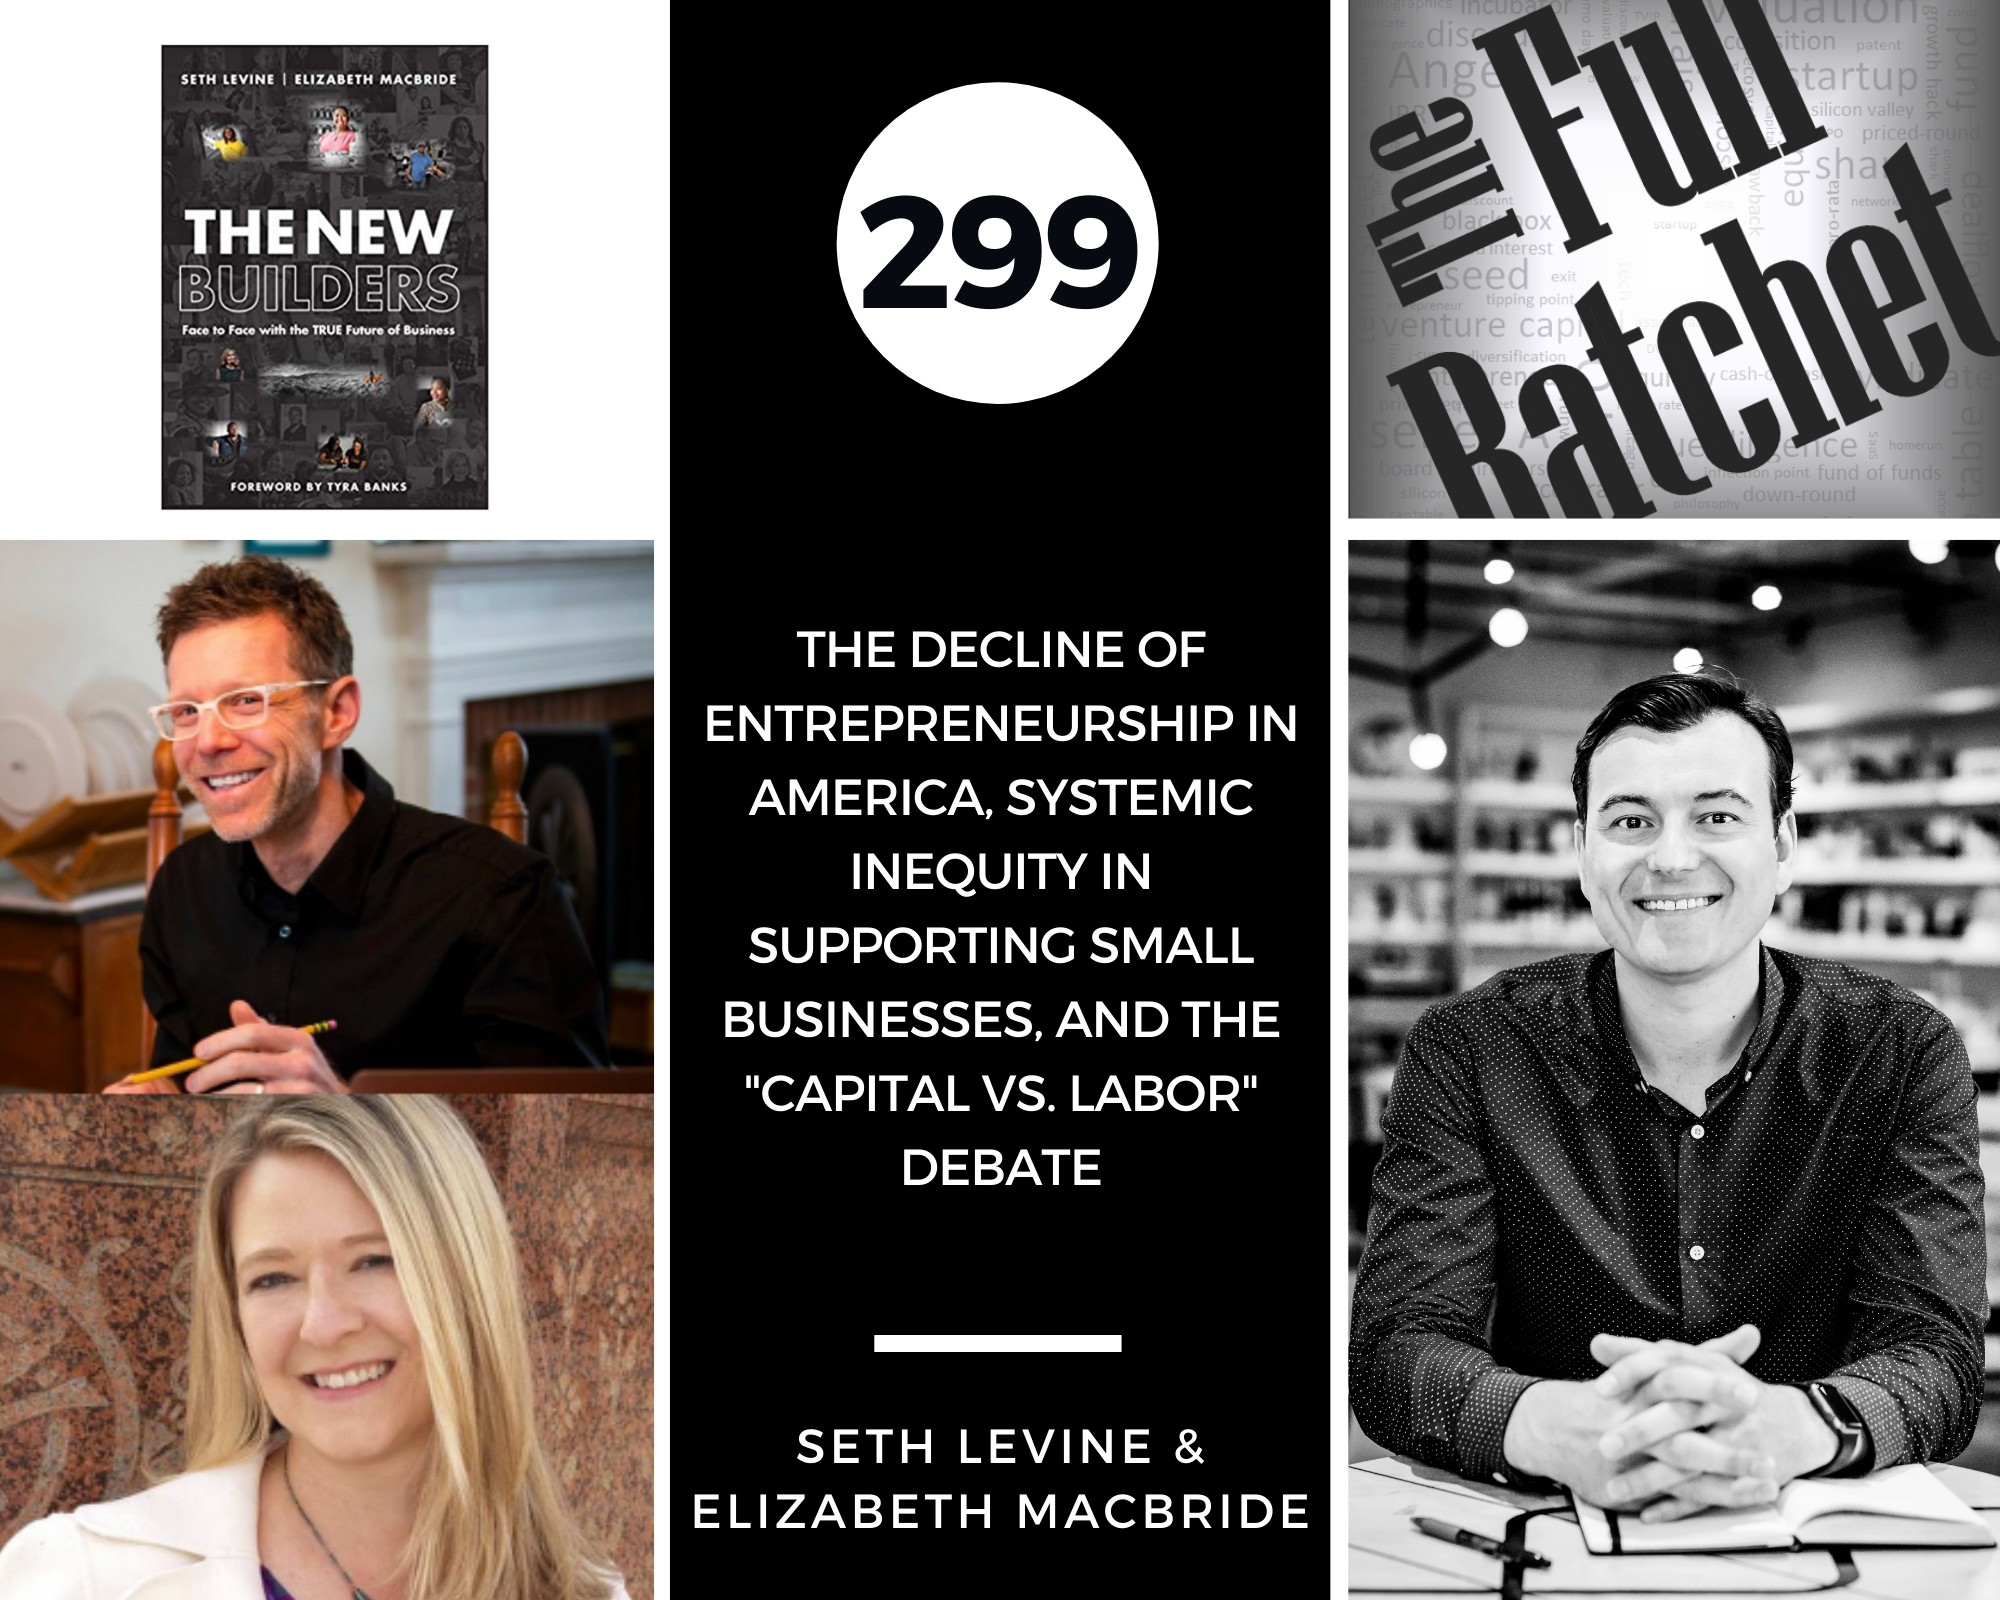 """299. The Decline of Entrepreneurship in America, Systemic Inequity in Supporting Small Businesses, and the """"Capital vs. Labor"""" Debate (Seth Levine & Elizabeth MacBride)"""